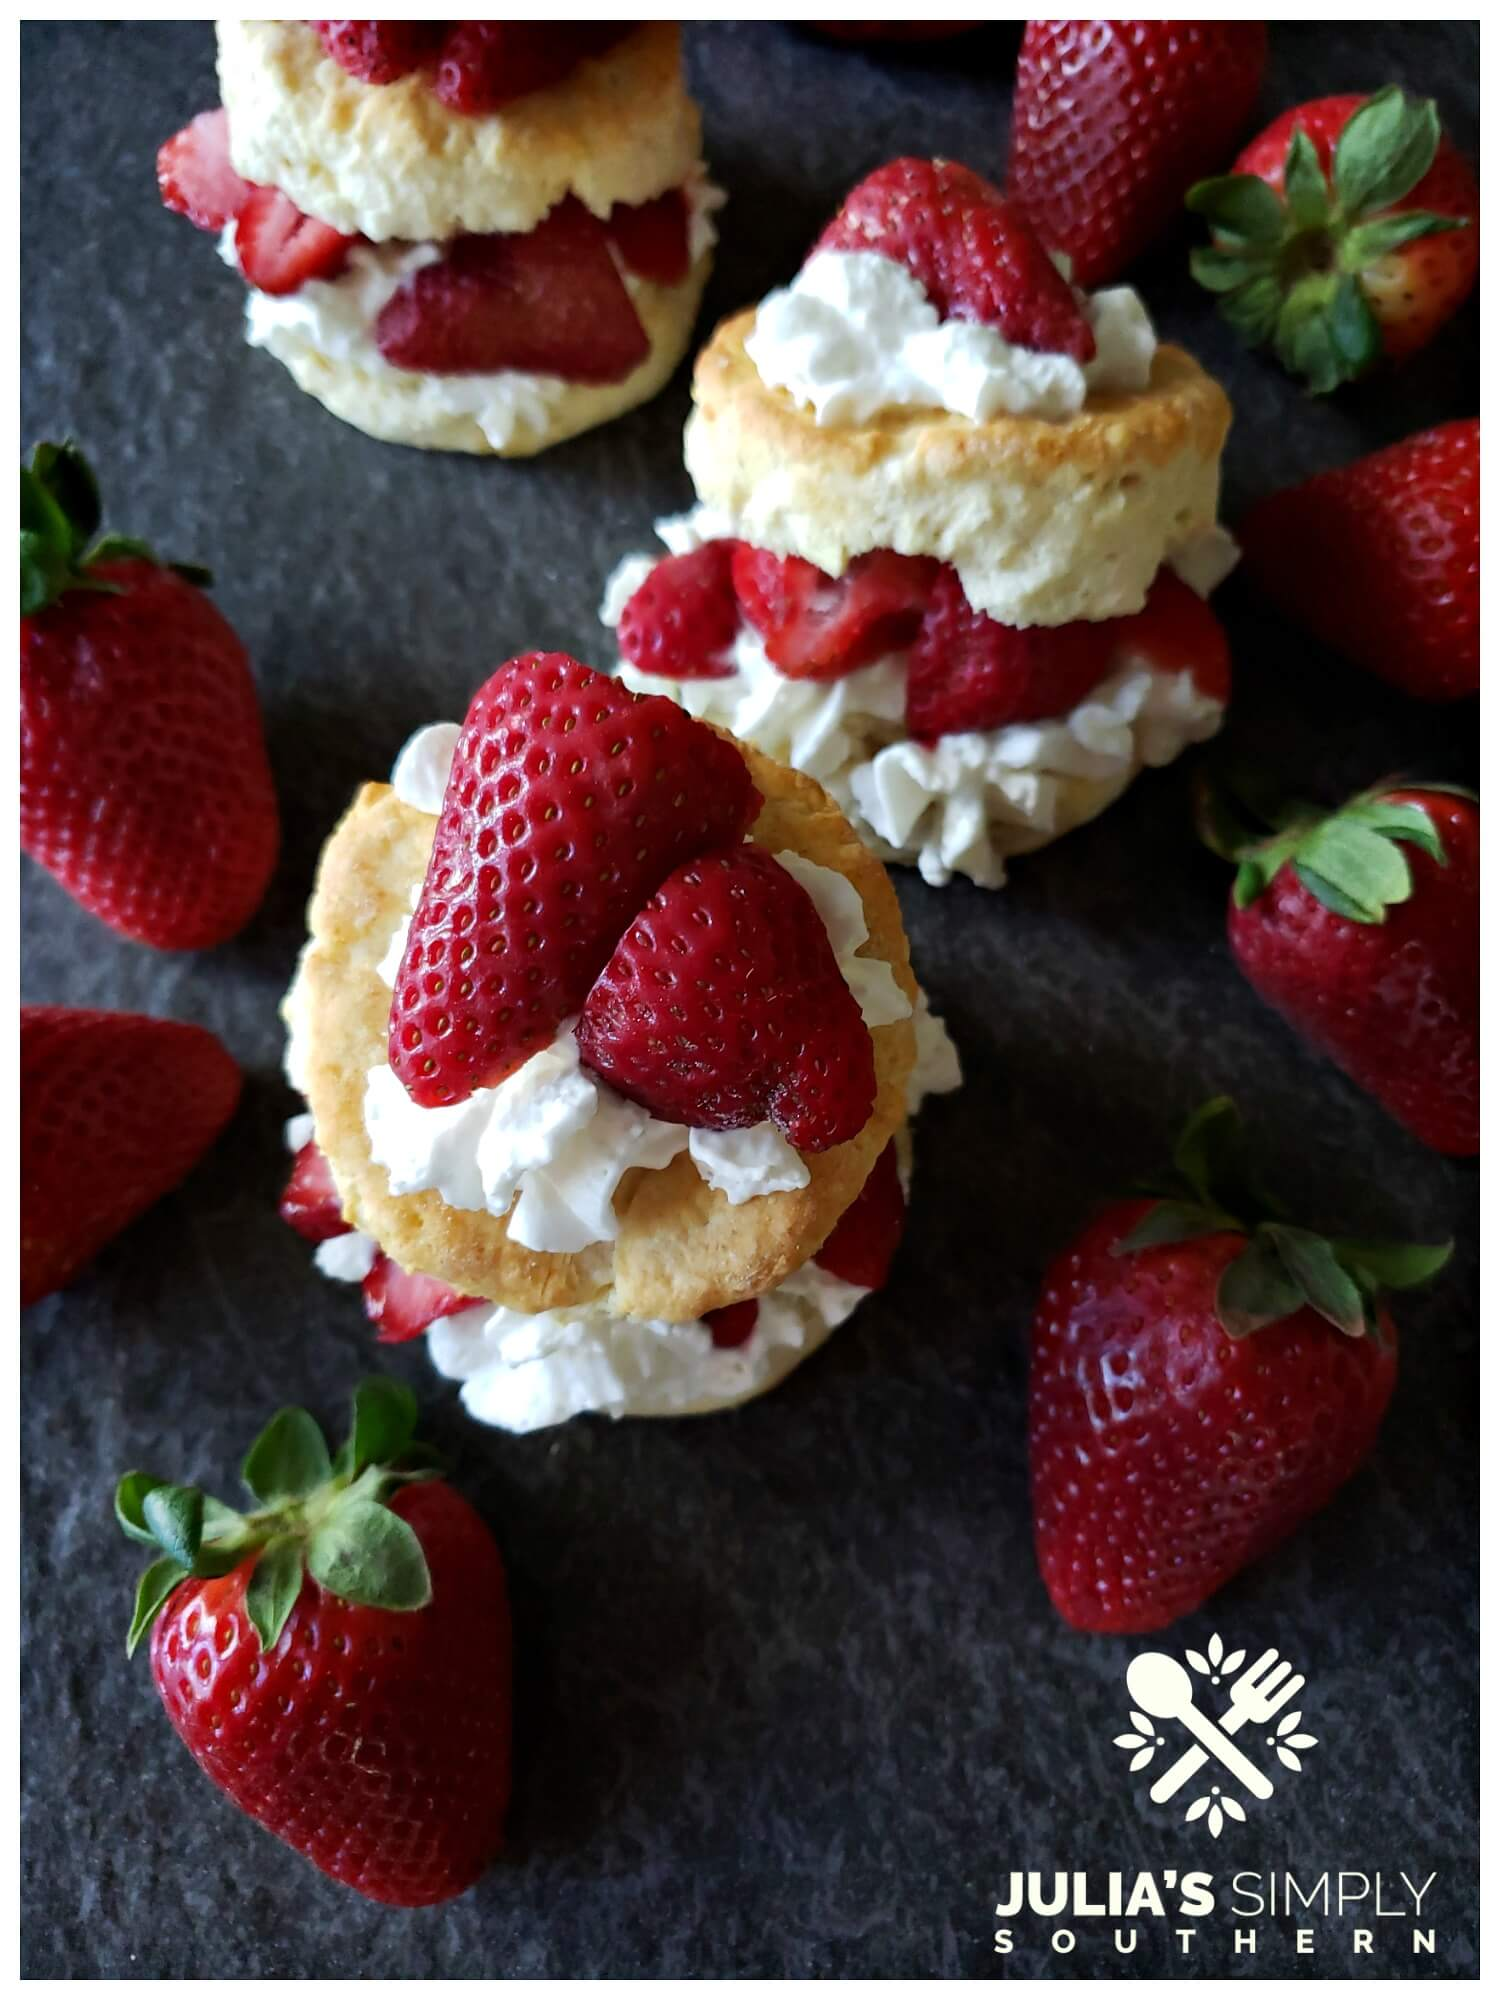 Traditional old fashioned strawberry shortcakes with fresh spring strawberries with whipped cream